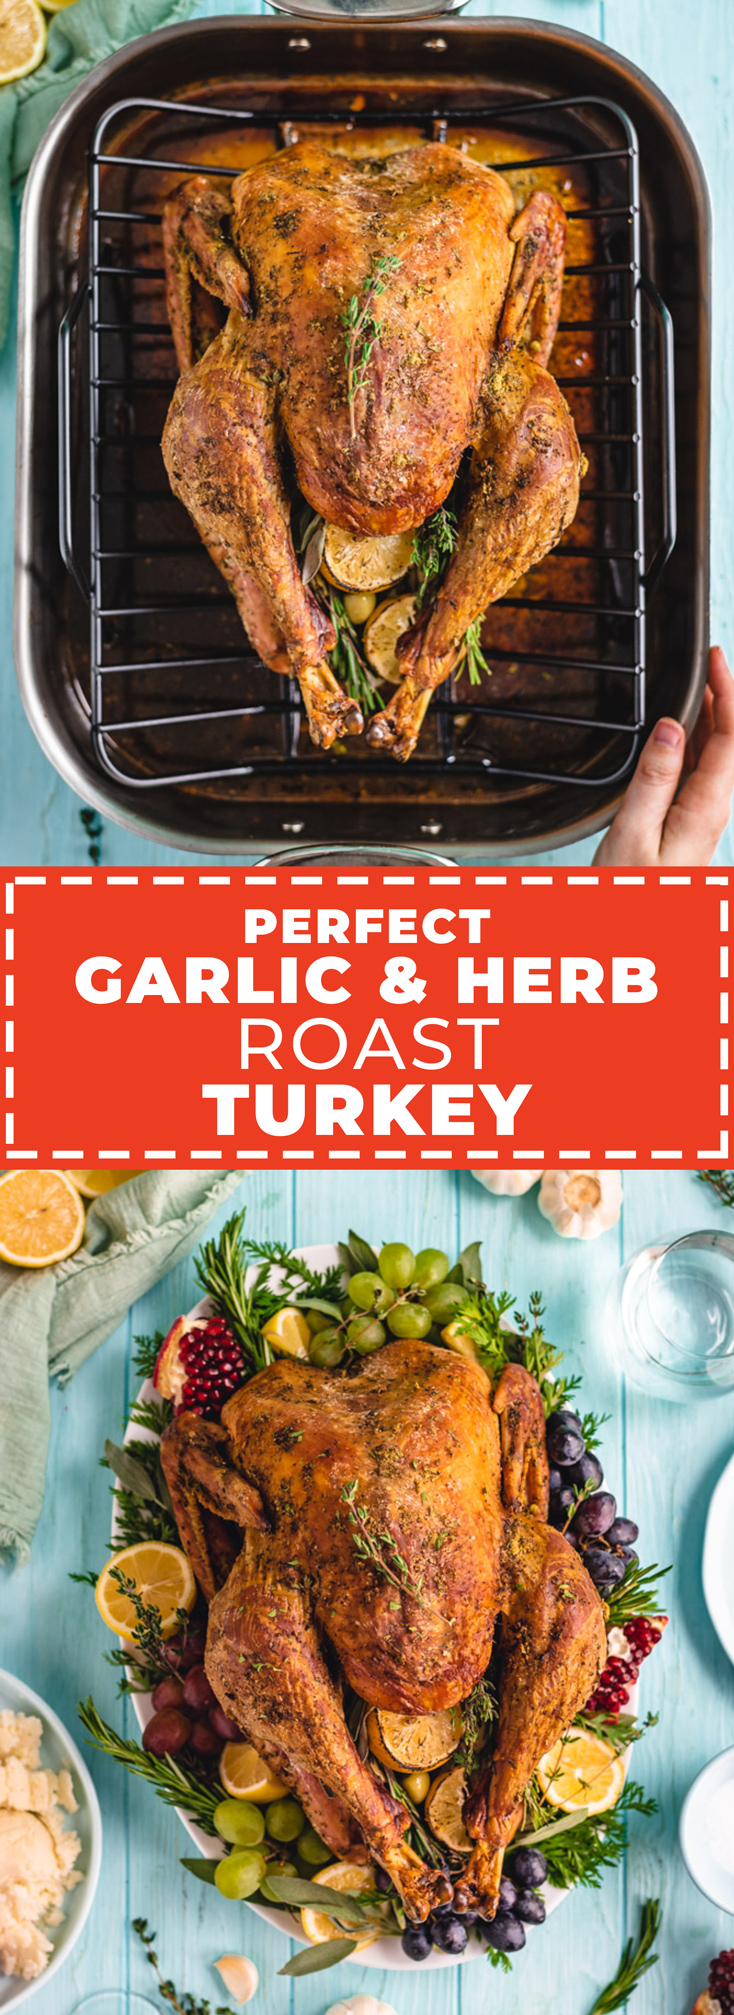 This Perfect Garlic and Herb Roast Turkey recipe is engineered for perfection. Three simple tricks guarantee juicy meat, tons of flavor, and ridiculously crispy skin for a Thanksgiving turkey that's easy as pie. | hostthetoast.com